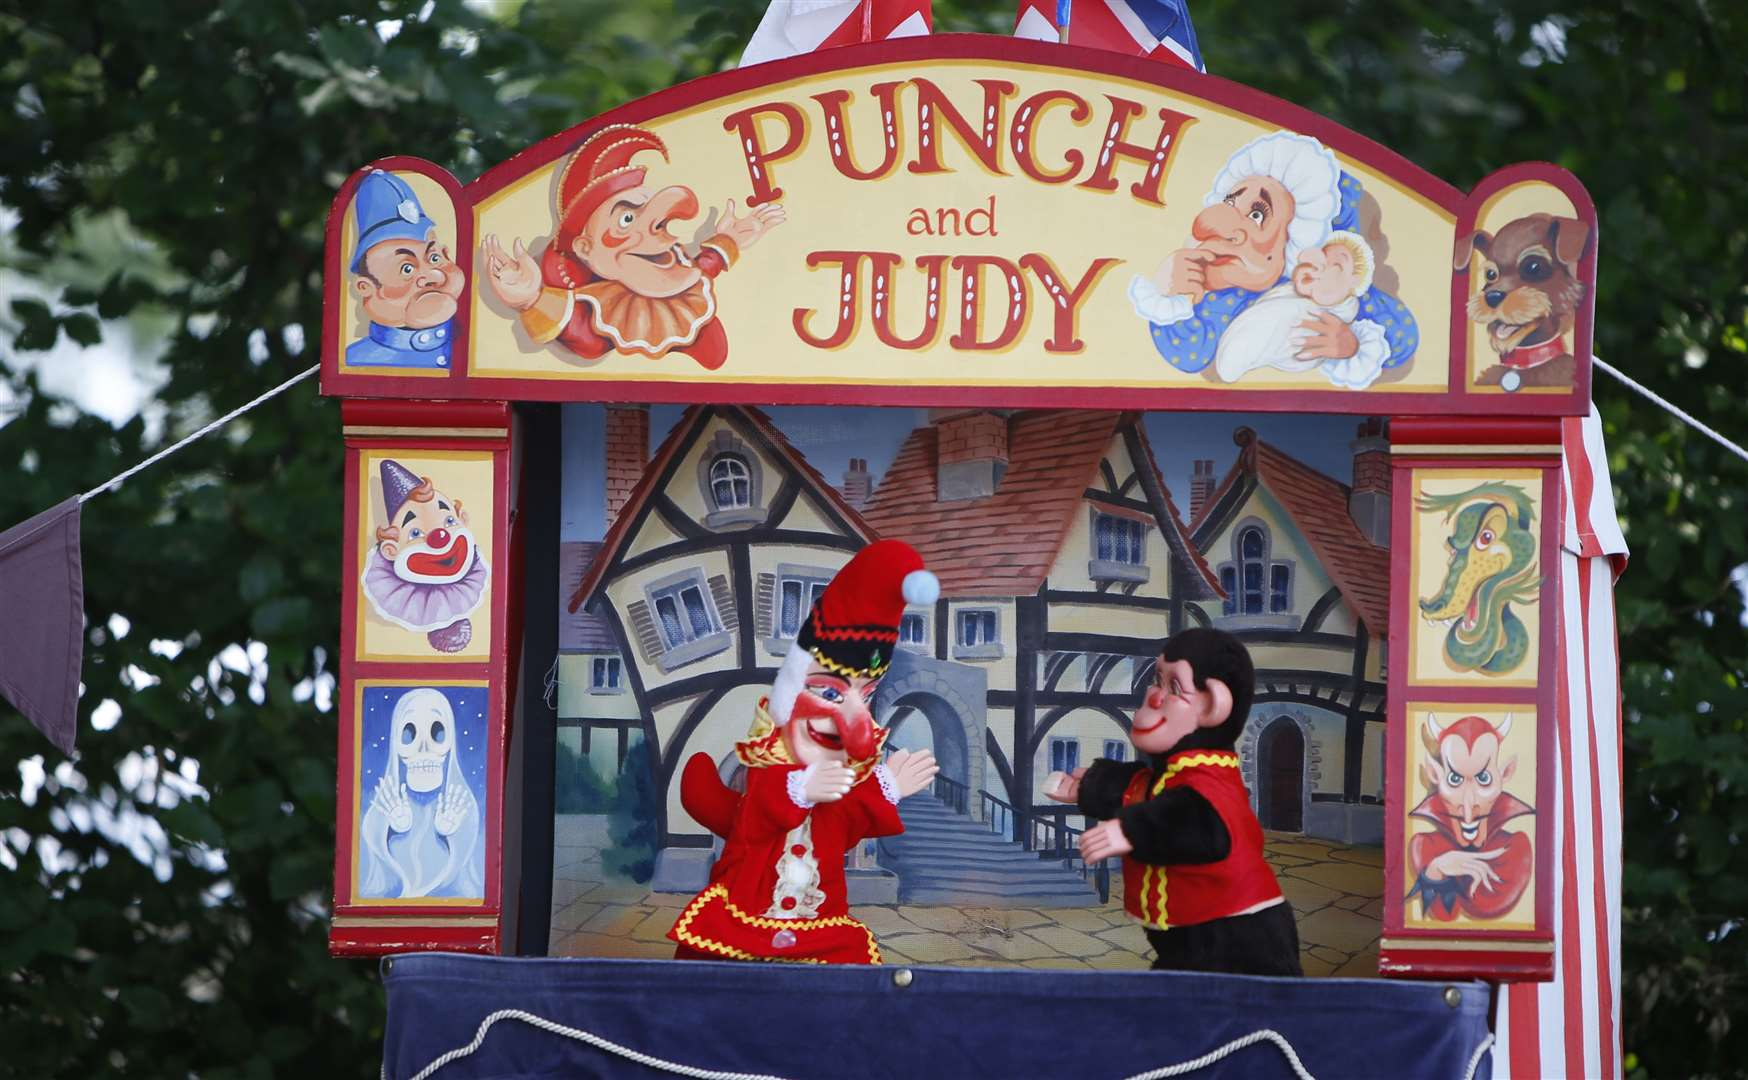 Punch & Judy at last year's show Picture: Andy Jones